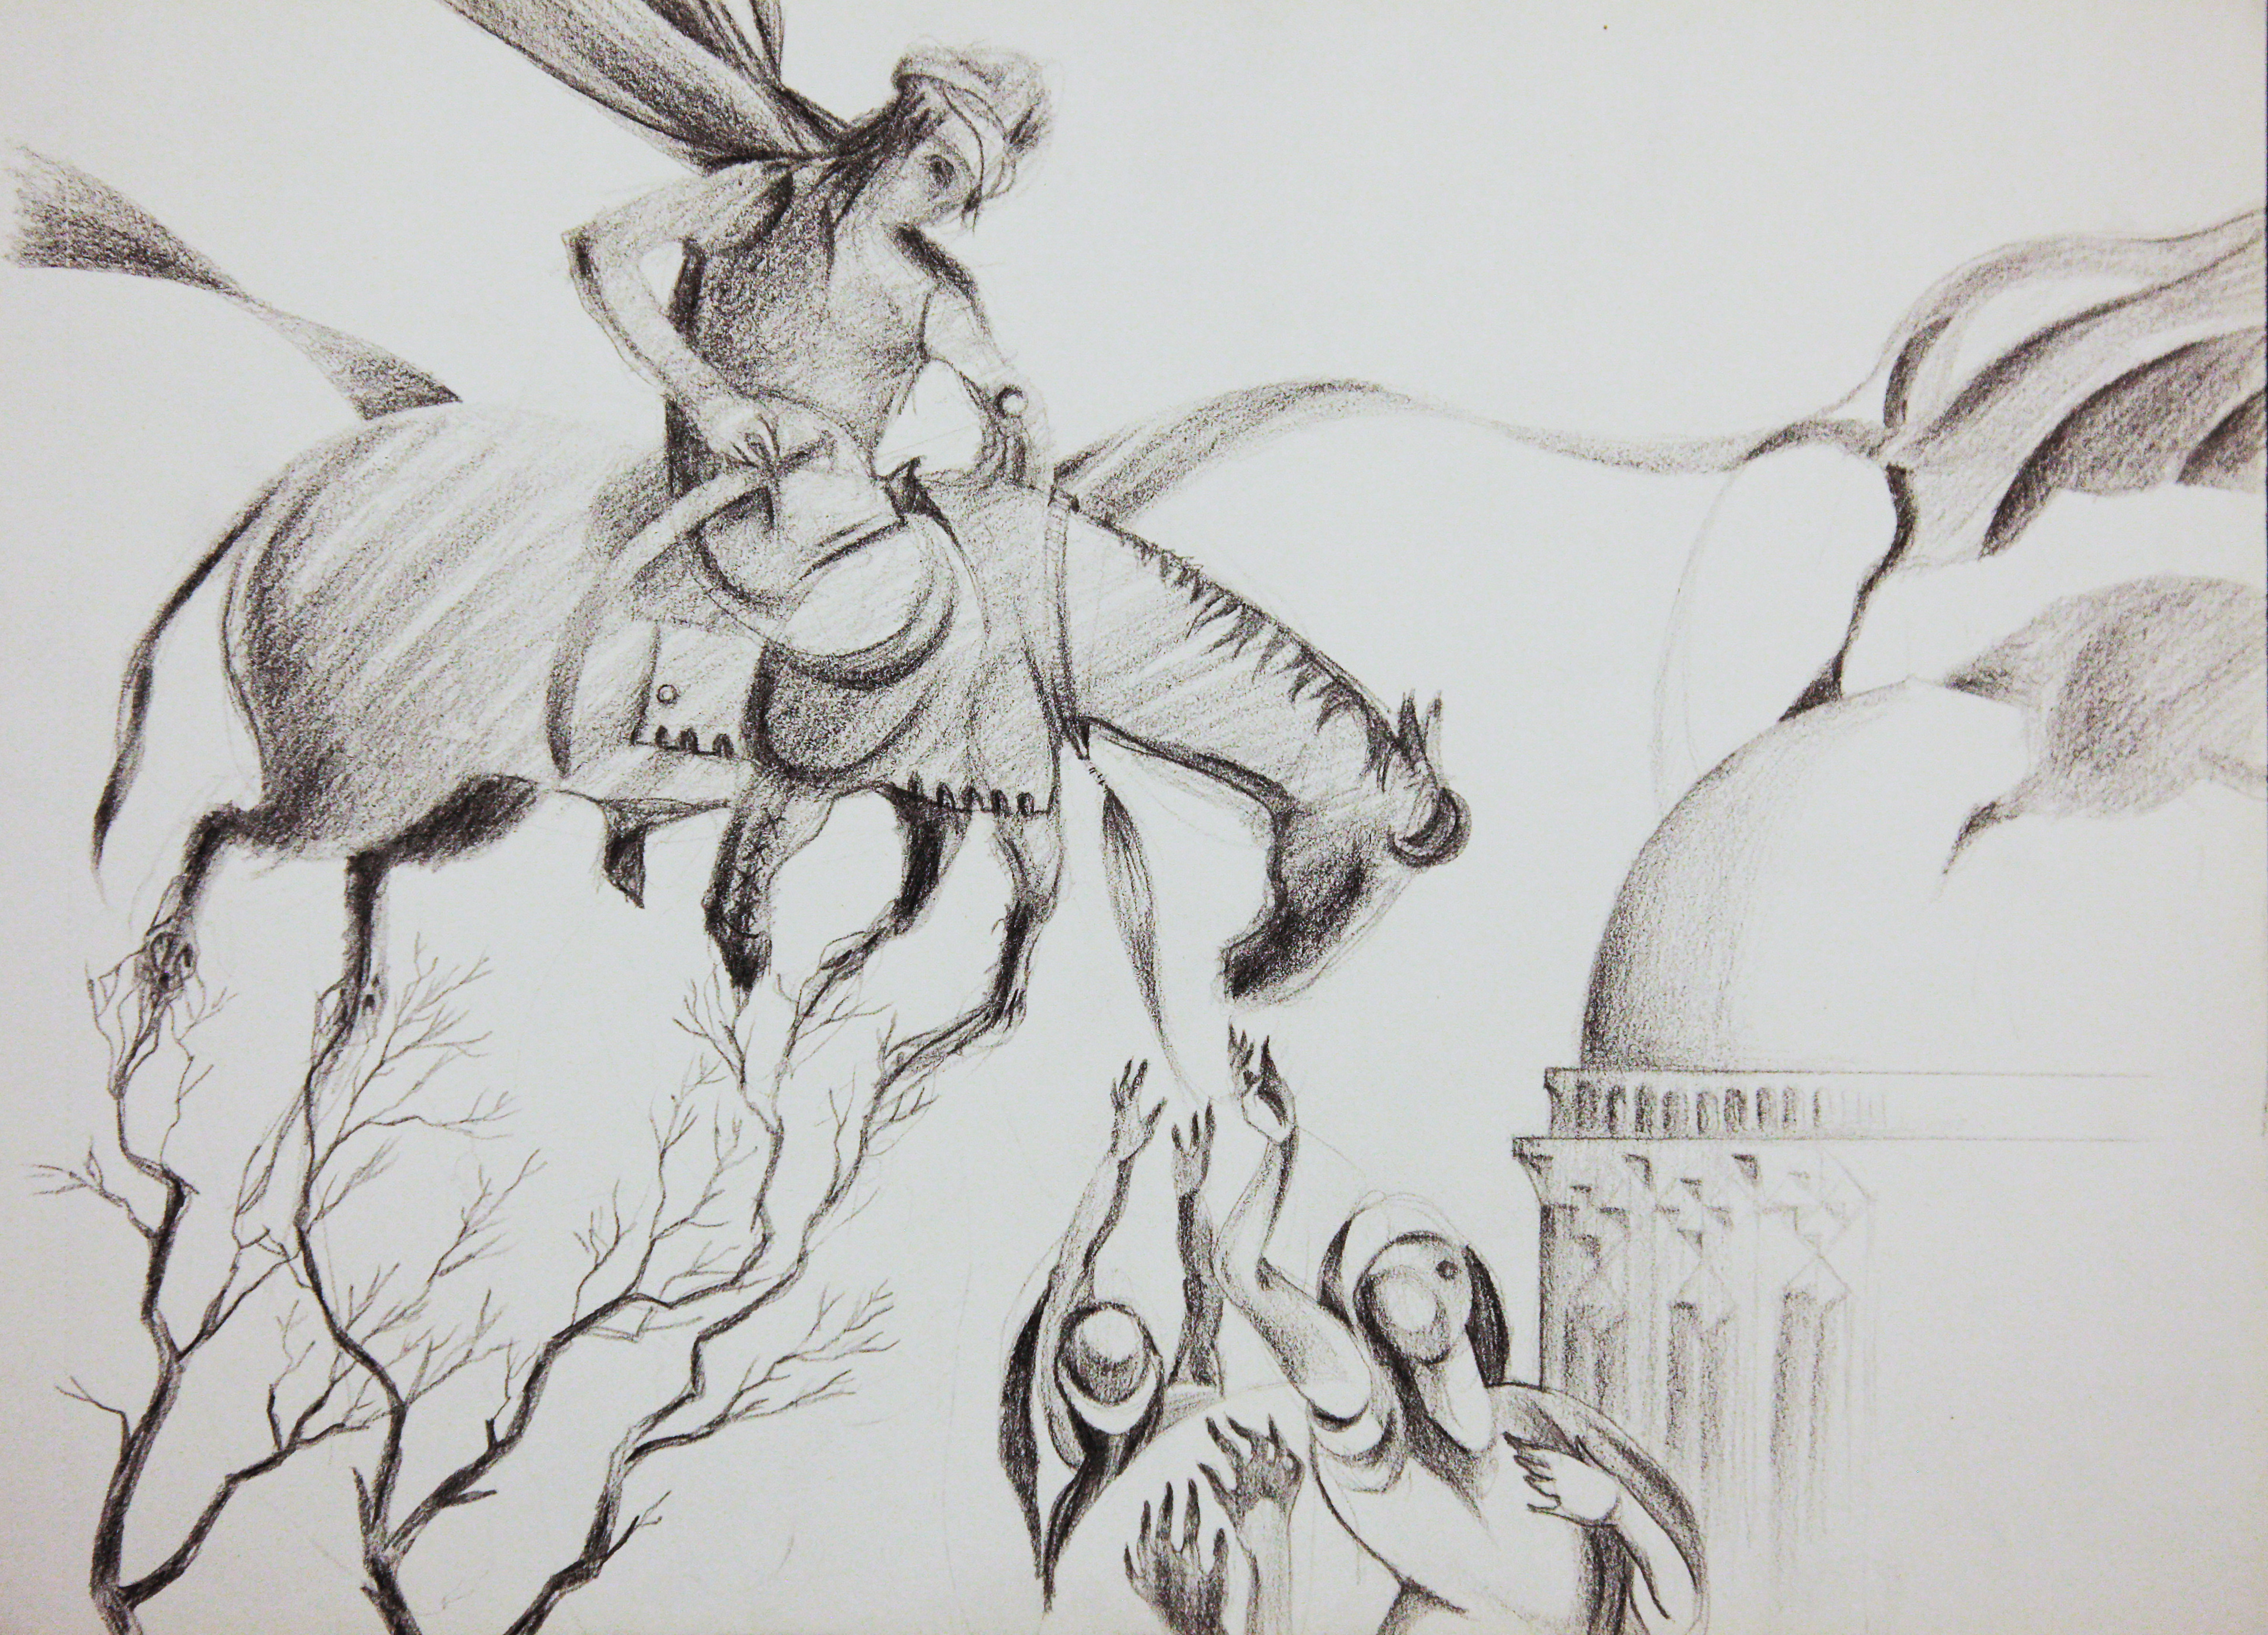 pencil on paper, 2015